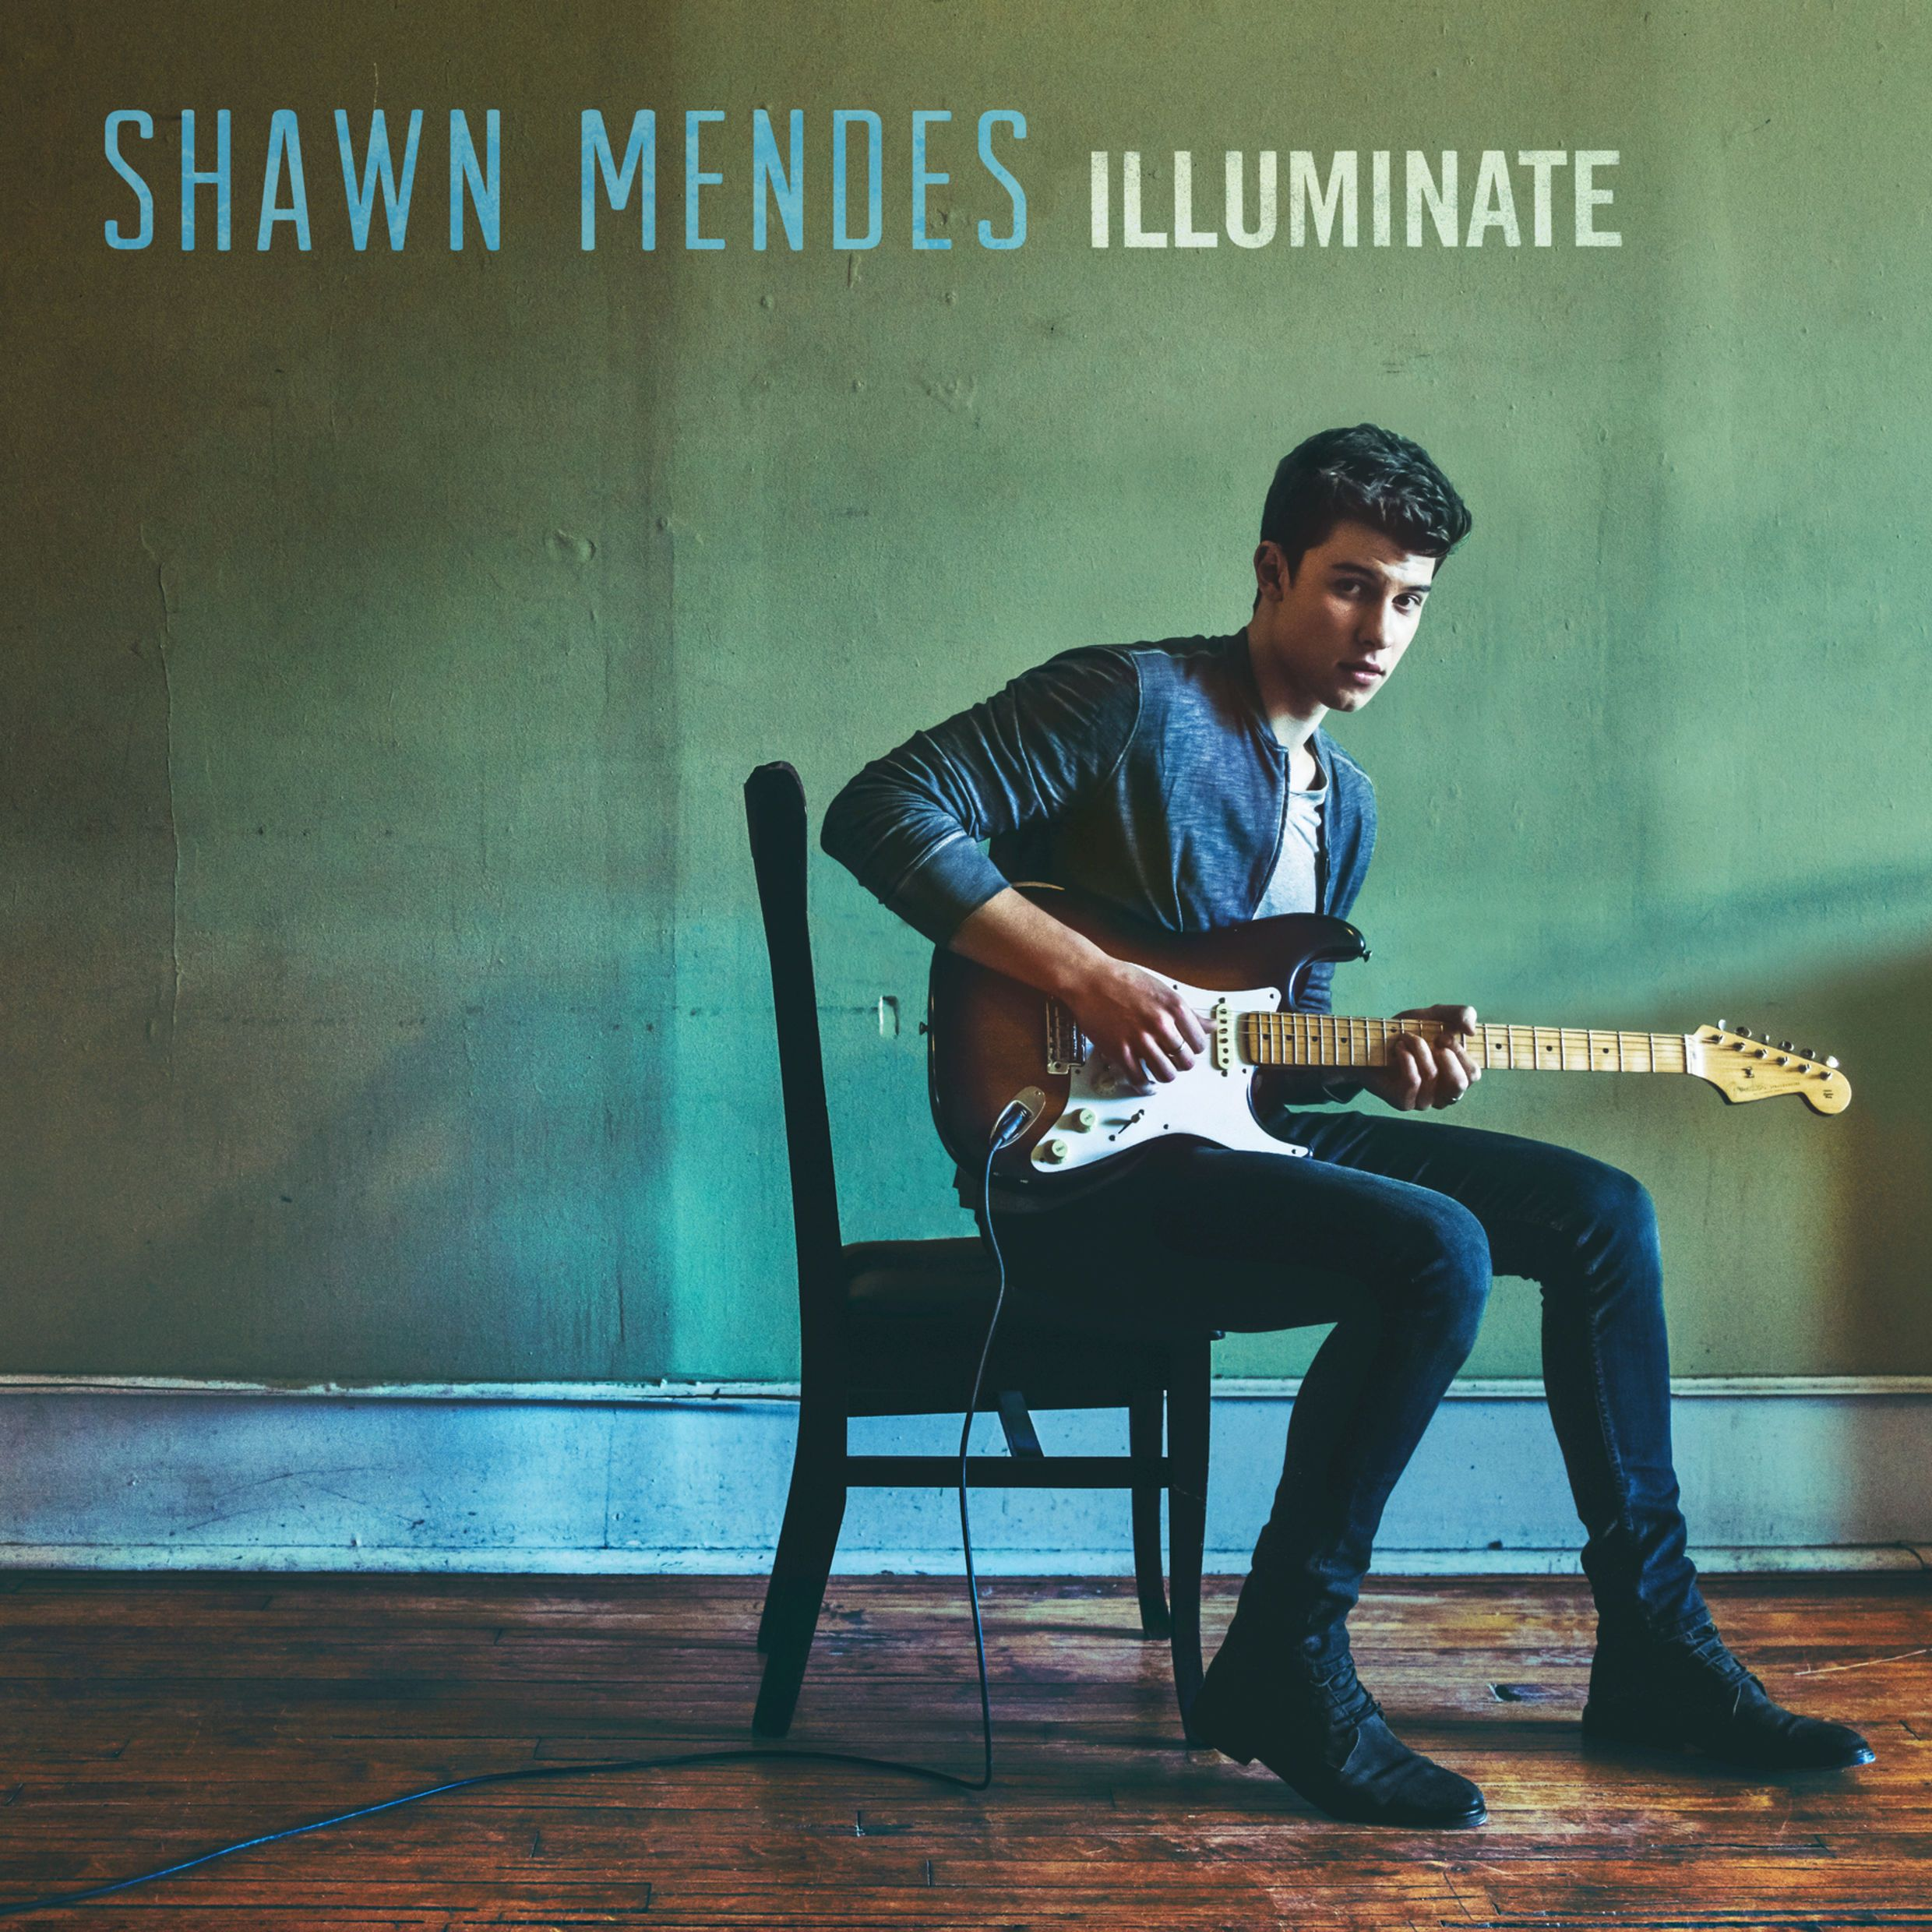 Shawn Mendes - Illuminate album cover